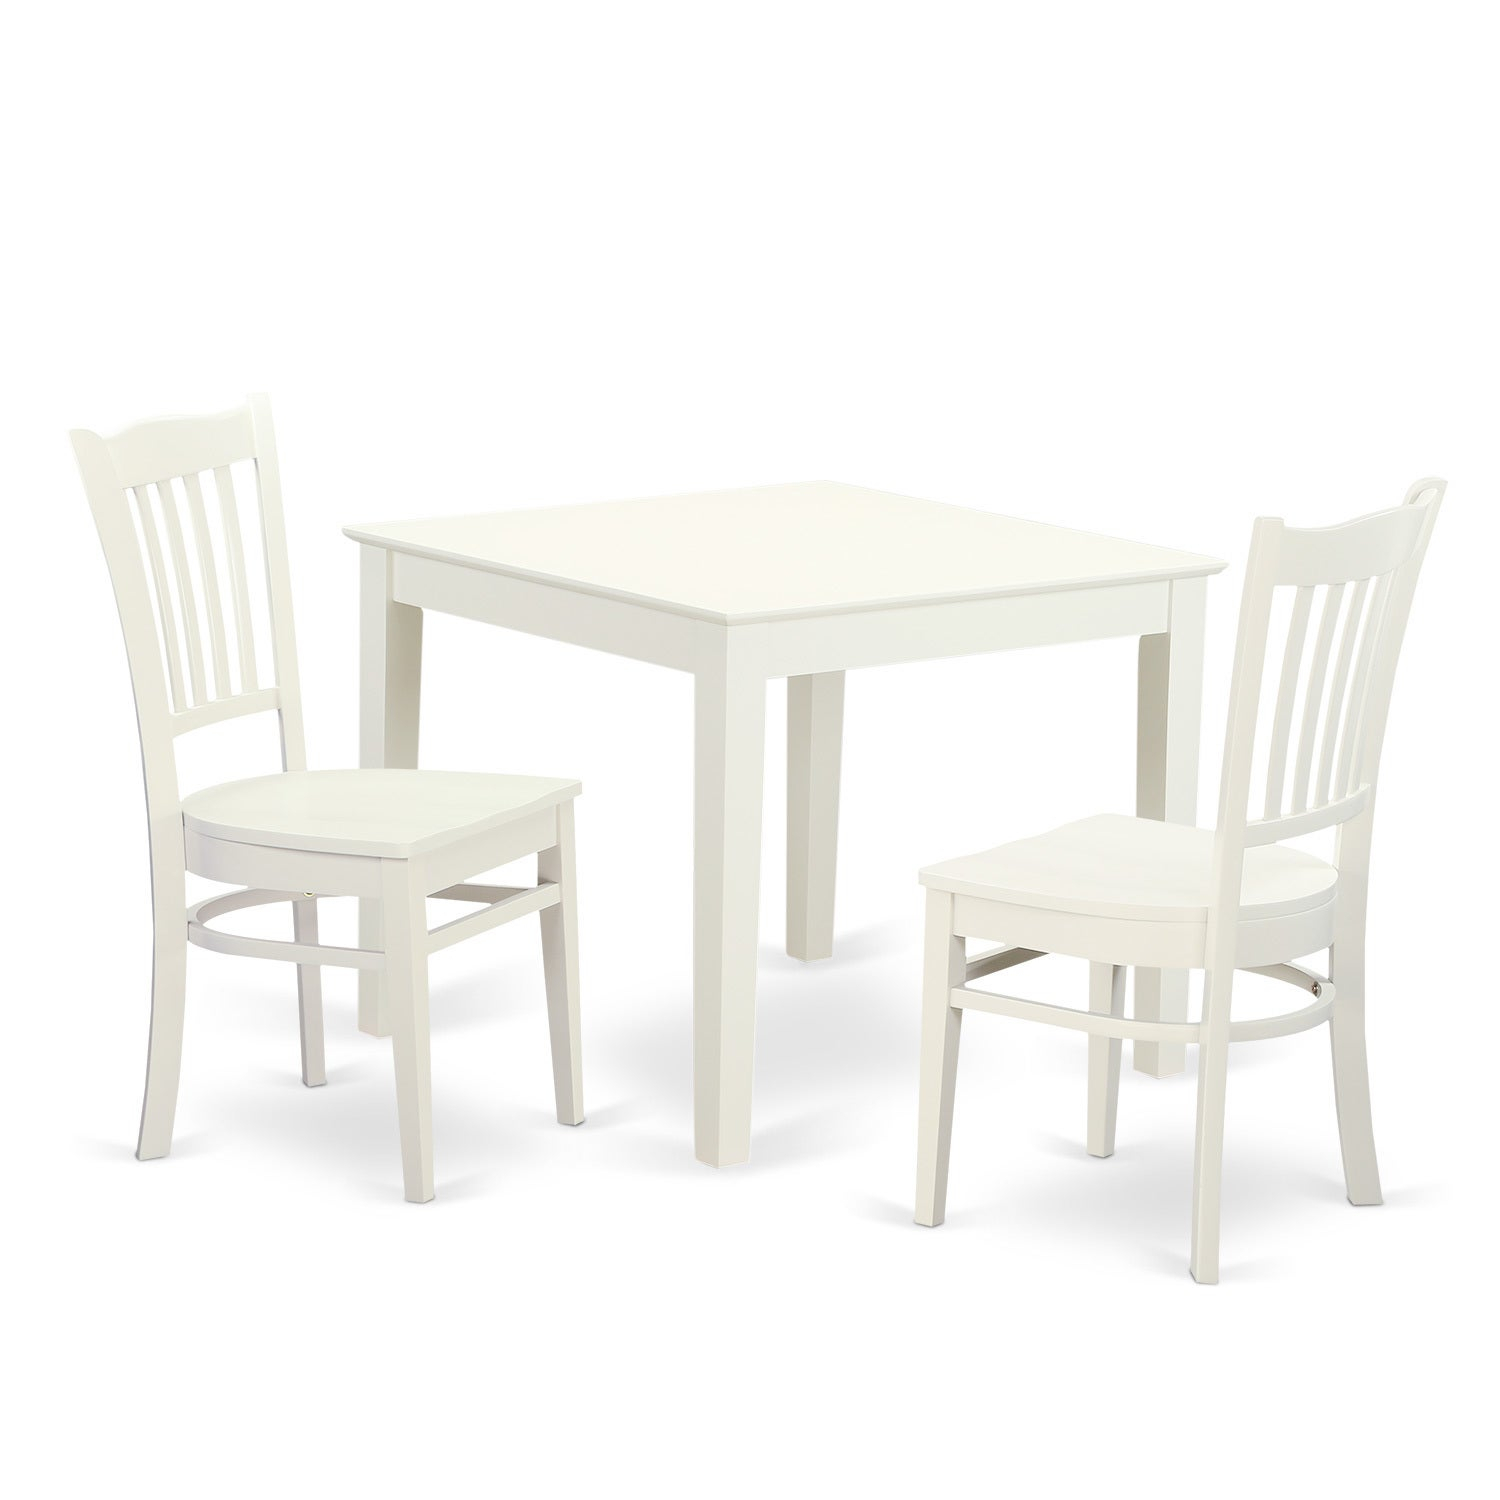 Shop Oxgr3 W 3 Piece Breakfast Nook Table And 2 Wood Dining Room Inside 2020 3 Piece Breakfast Nook Dinning Set (View 9 of 20)